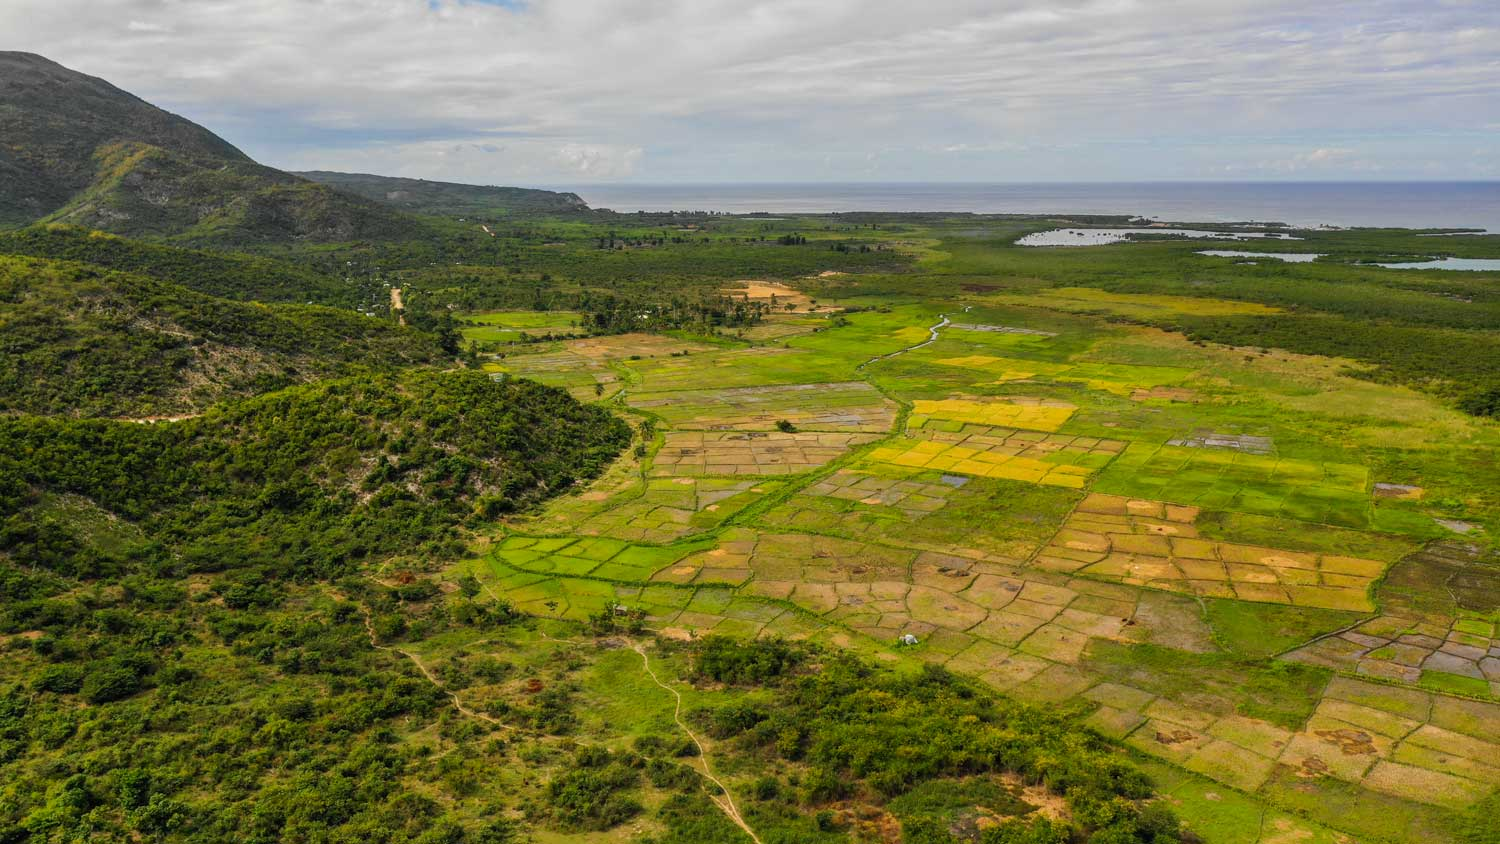 Aerial photo of rice fields by the coast in Corail, Haiti